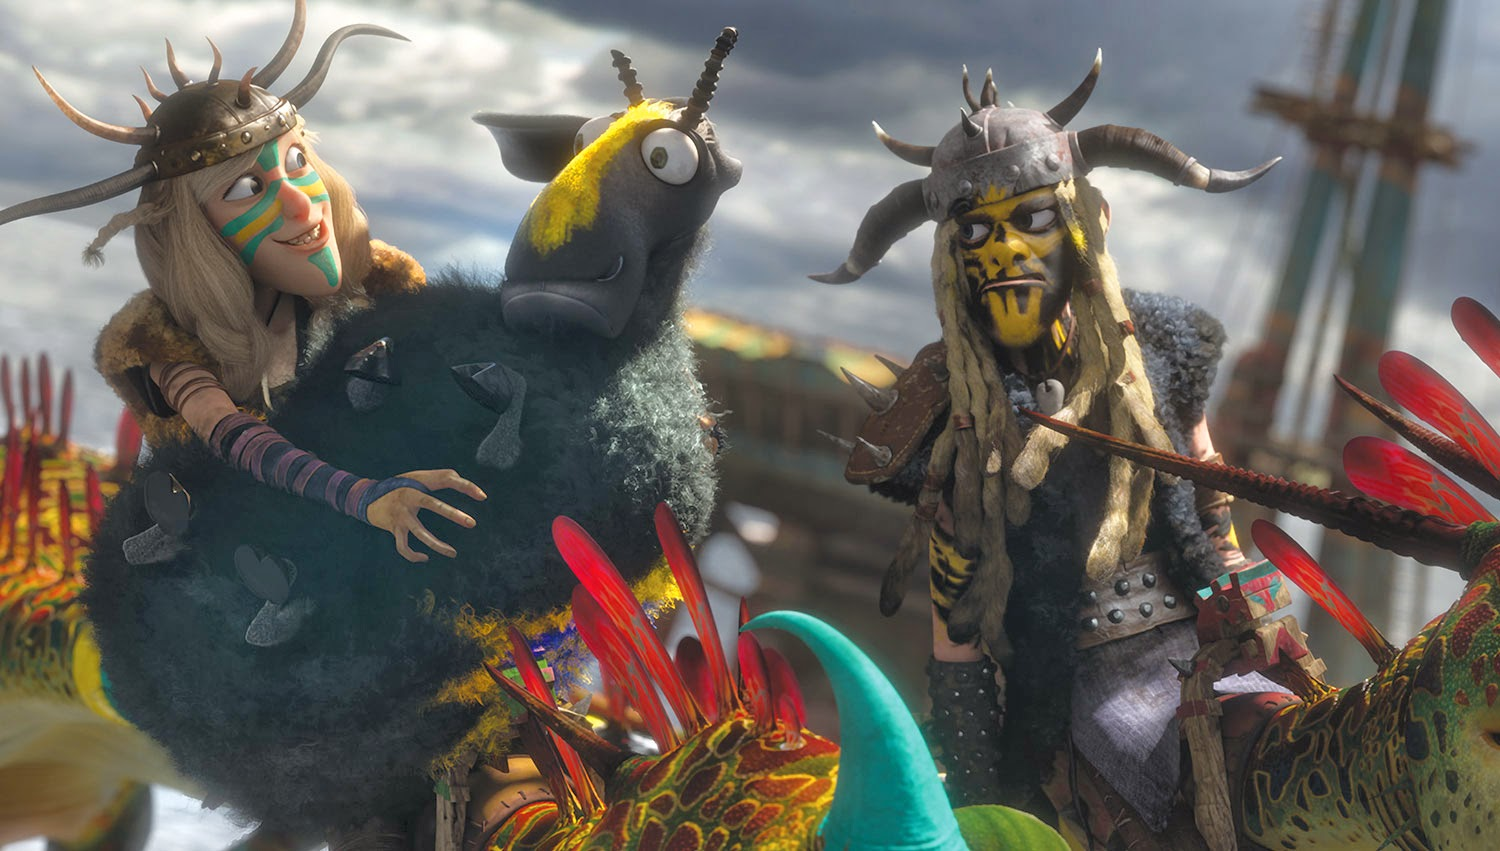 How to train your dragon 2 trailer how to train your dragon 2 movie saturday june 22 2013 ccuart Images